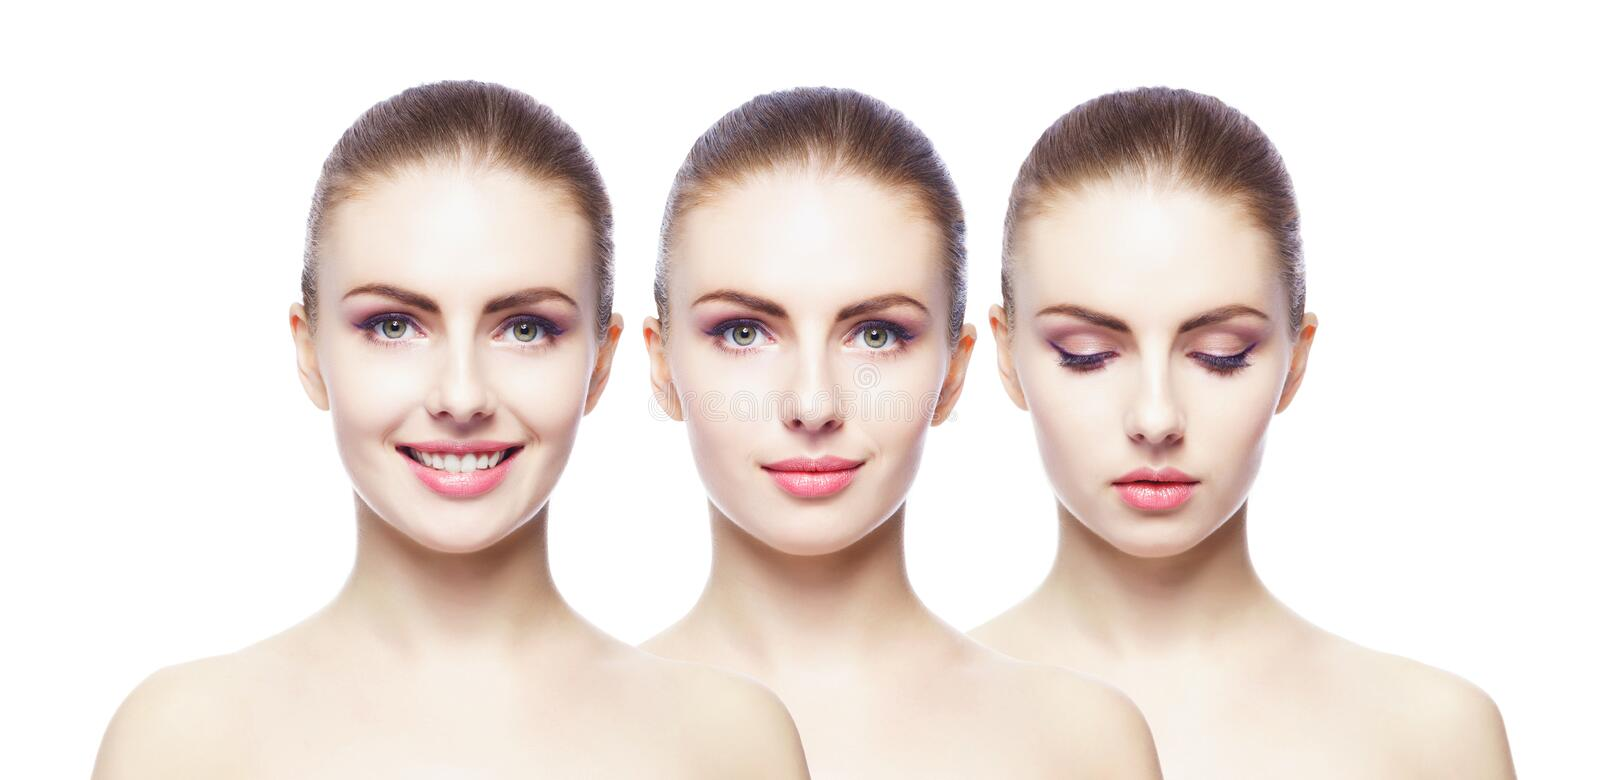 Collage of different female portraits. Spa, face lifting, plastic surgery concept. Collage of different woman portraits. Spa, face lifting, plastic surgery stock images